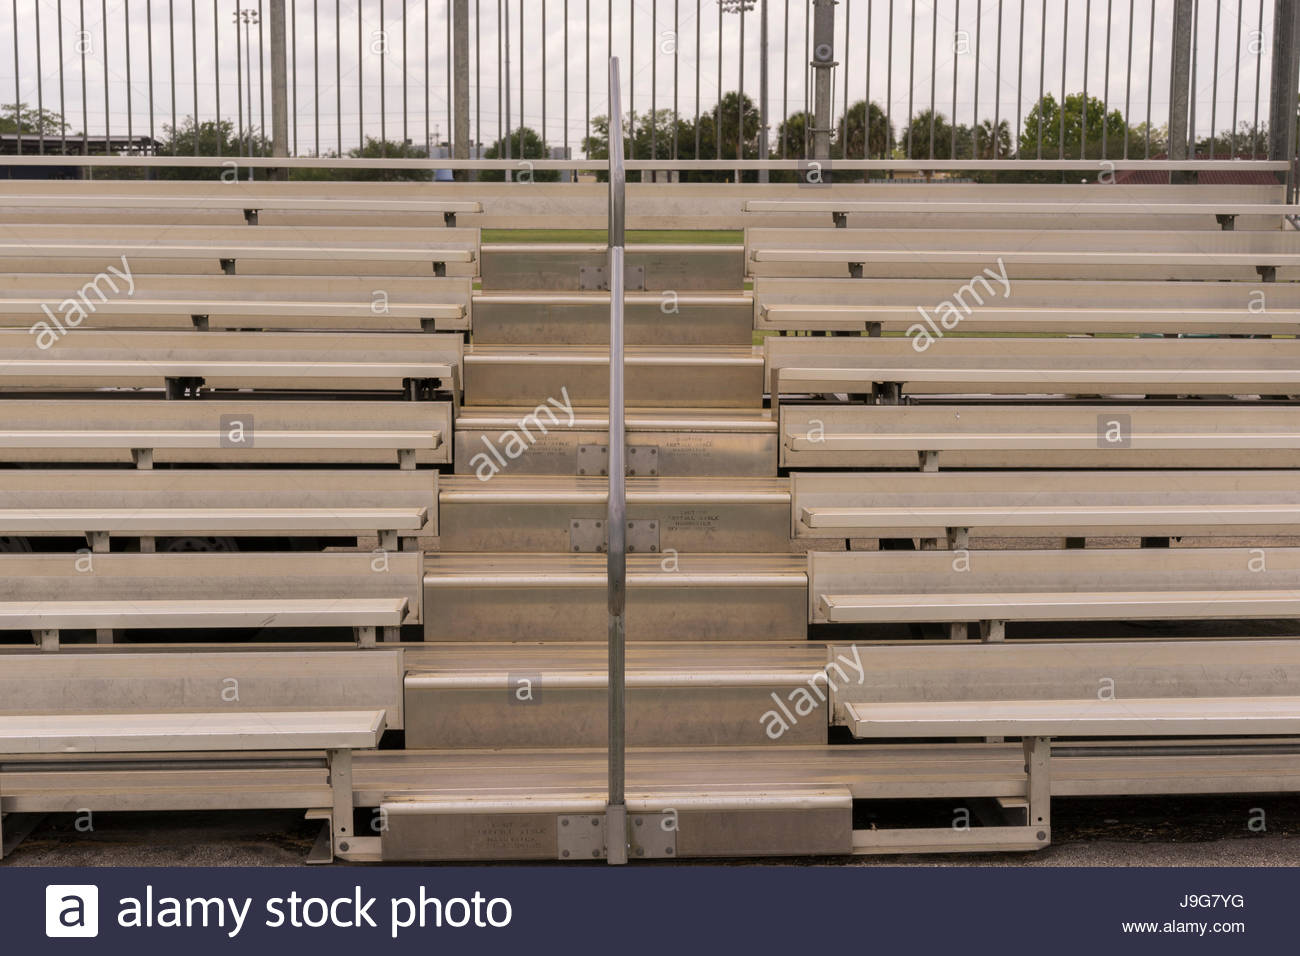 Bleachers Outdoors At A Football Field - Stock Image